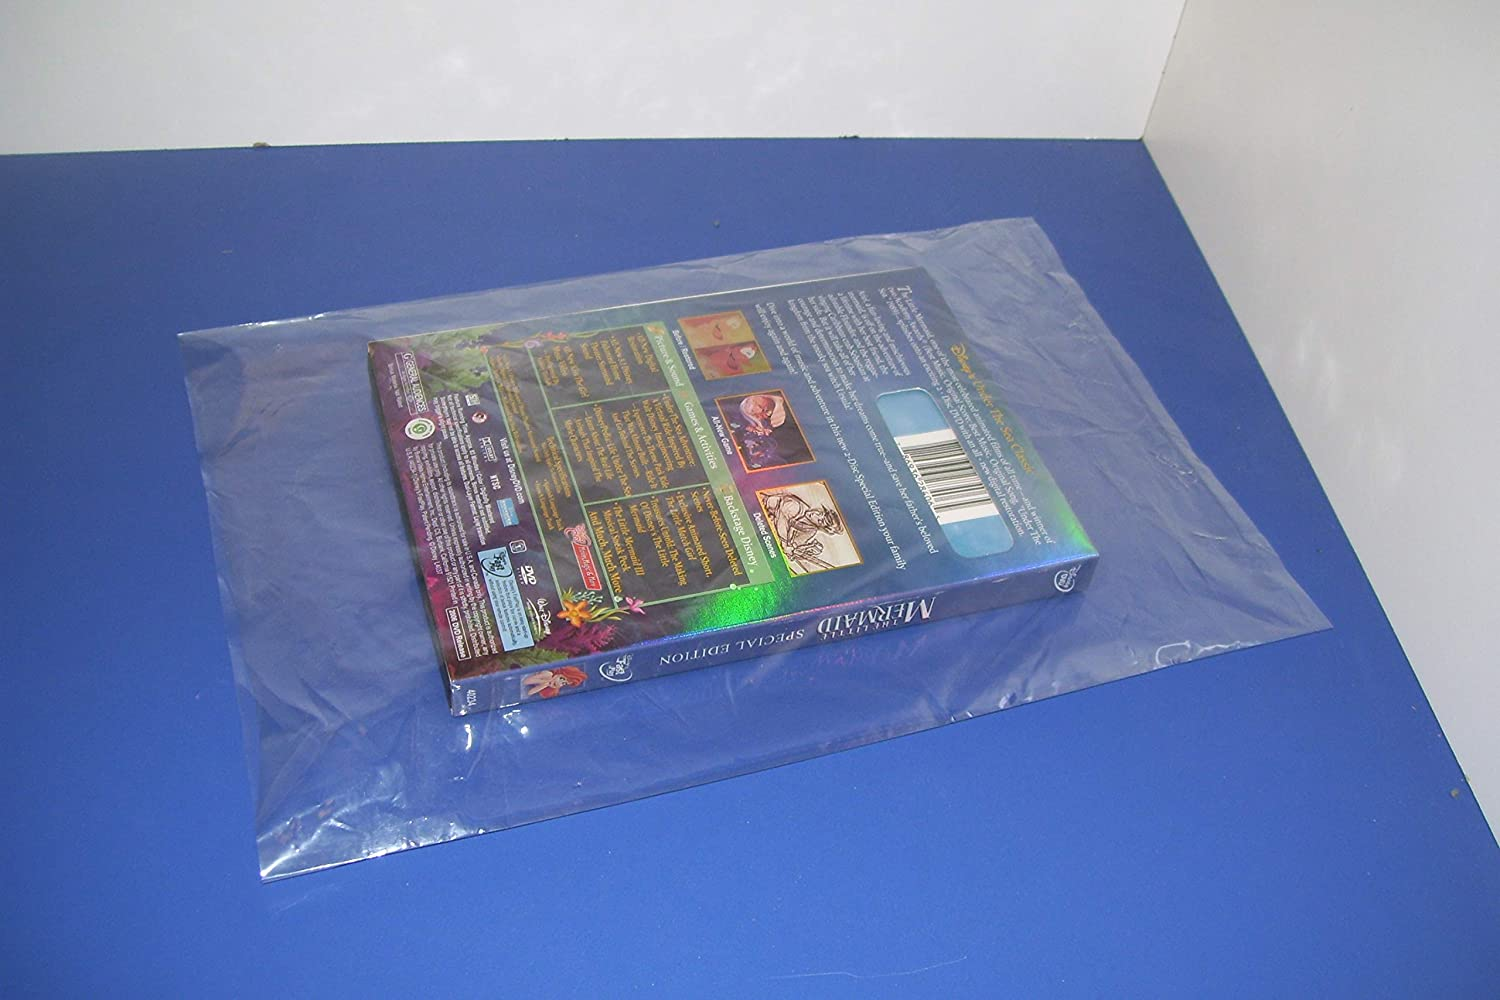 ULINE 100 Clear 24 x 36 Poly Bags Plastic Lay Flat Open TOP Packing ULINE Best 1 MIL